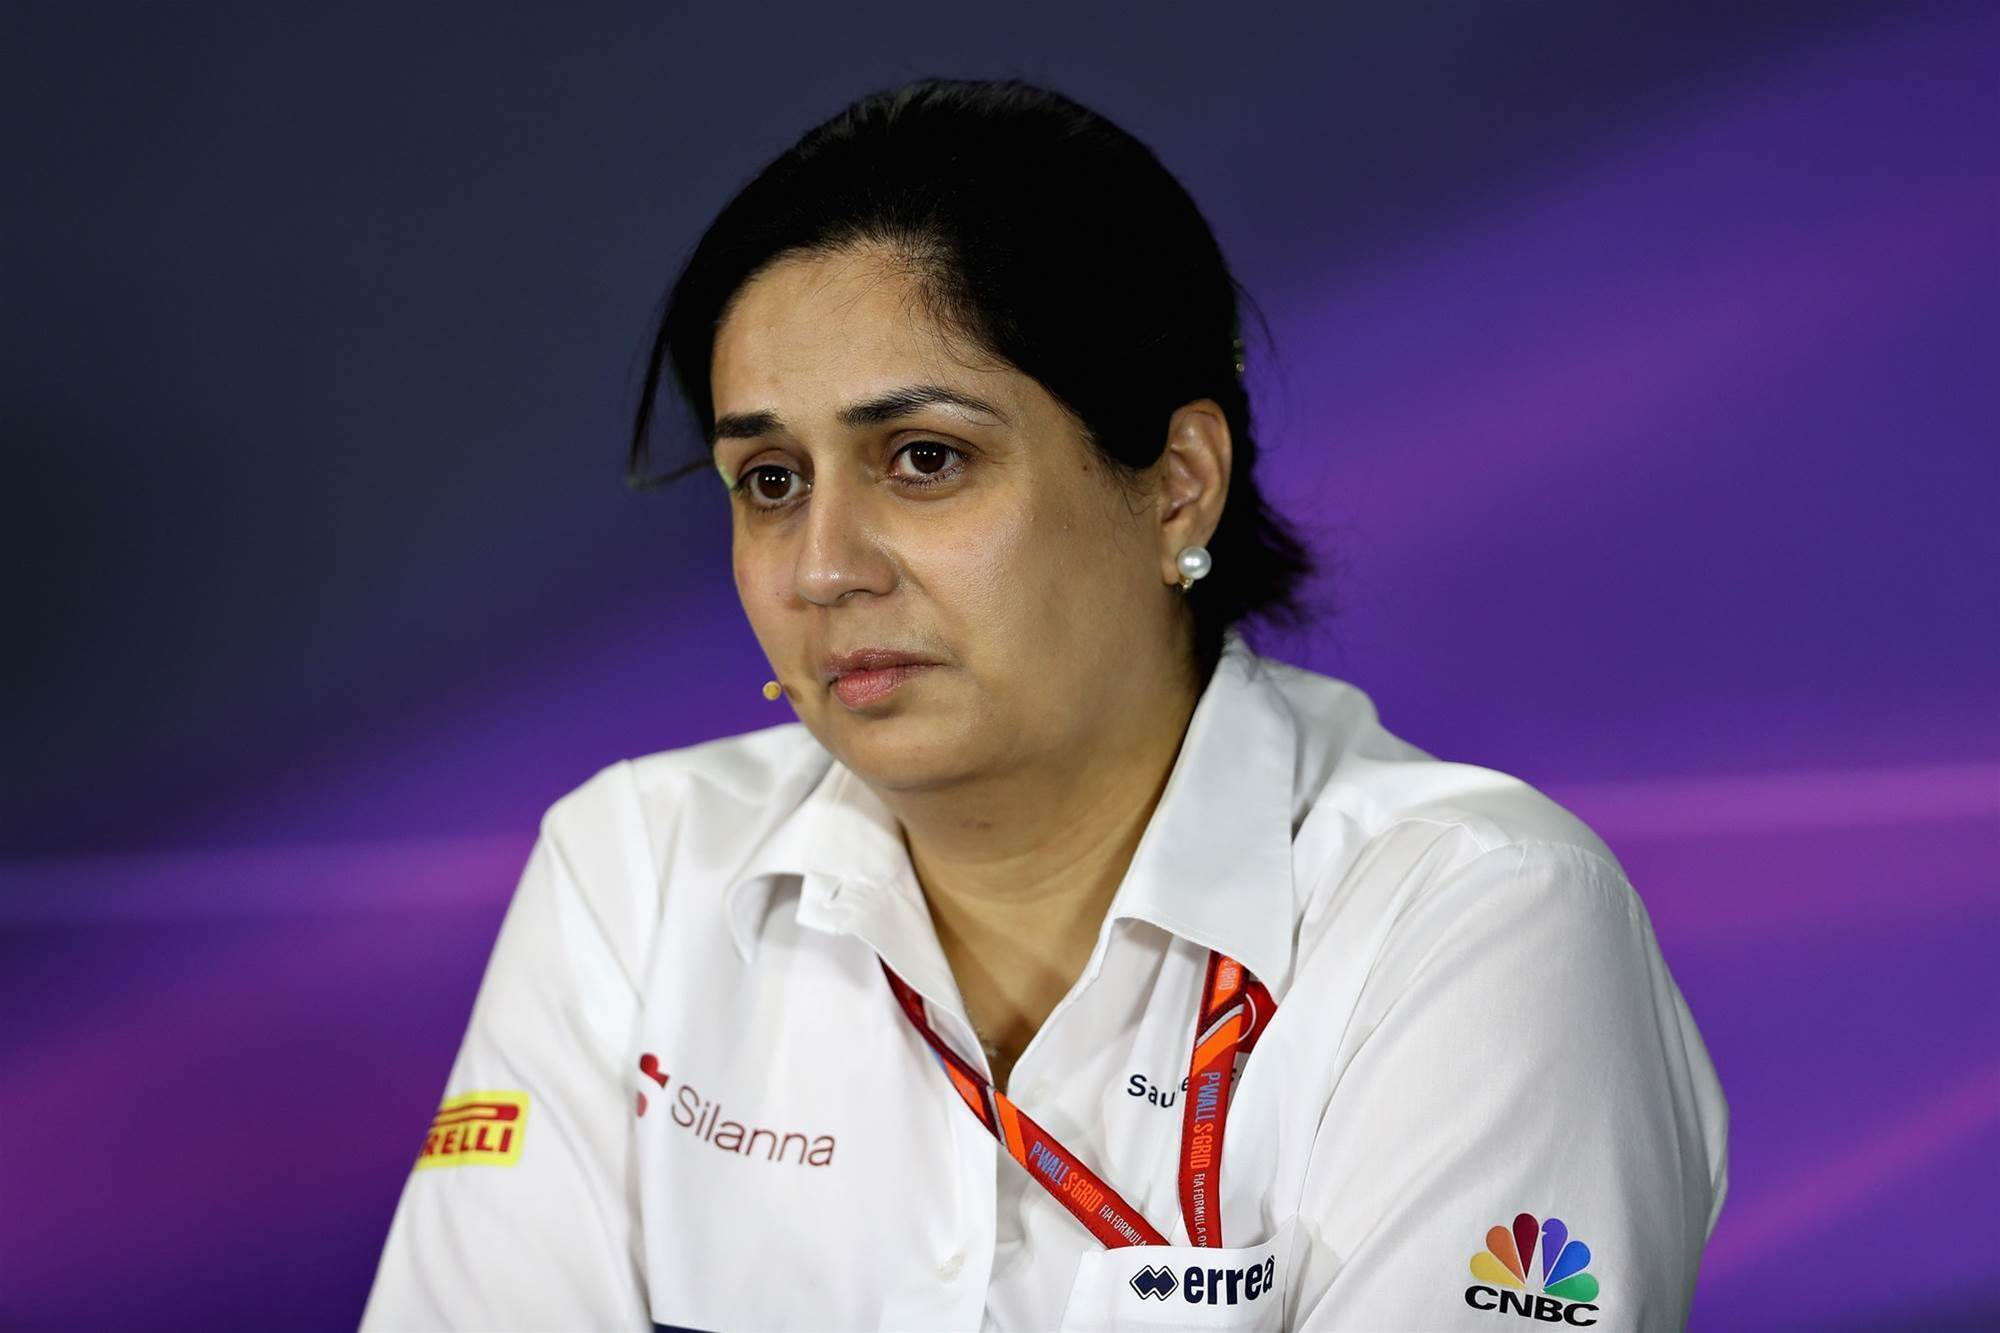 'Diverging views' cited over Kaltenborn split with Sauber